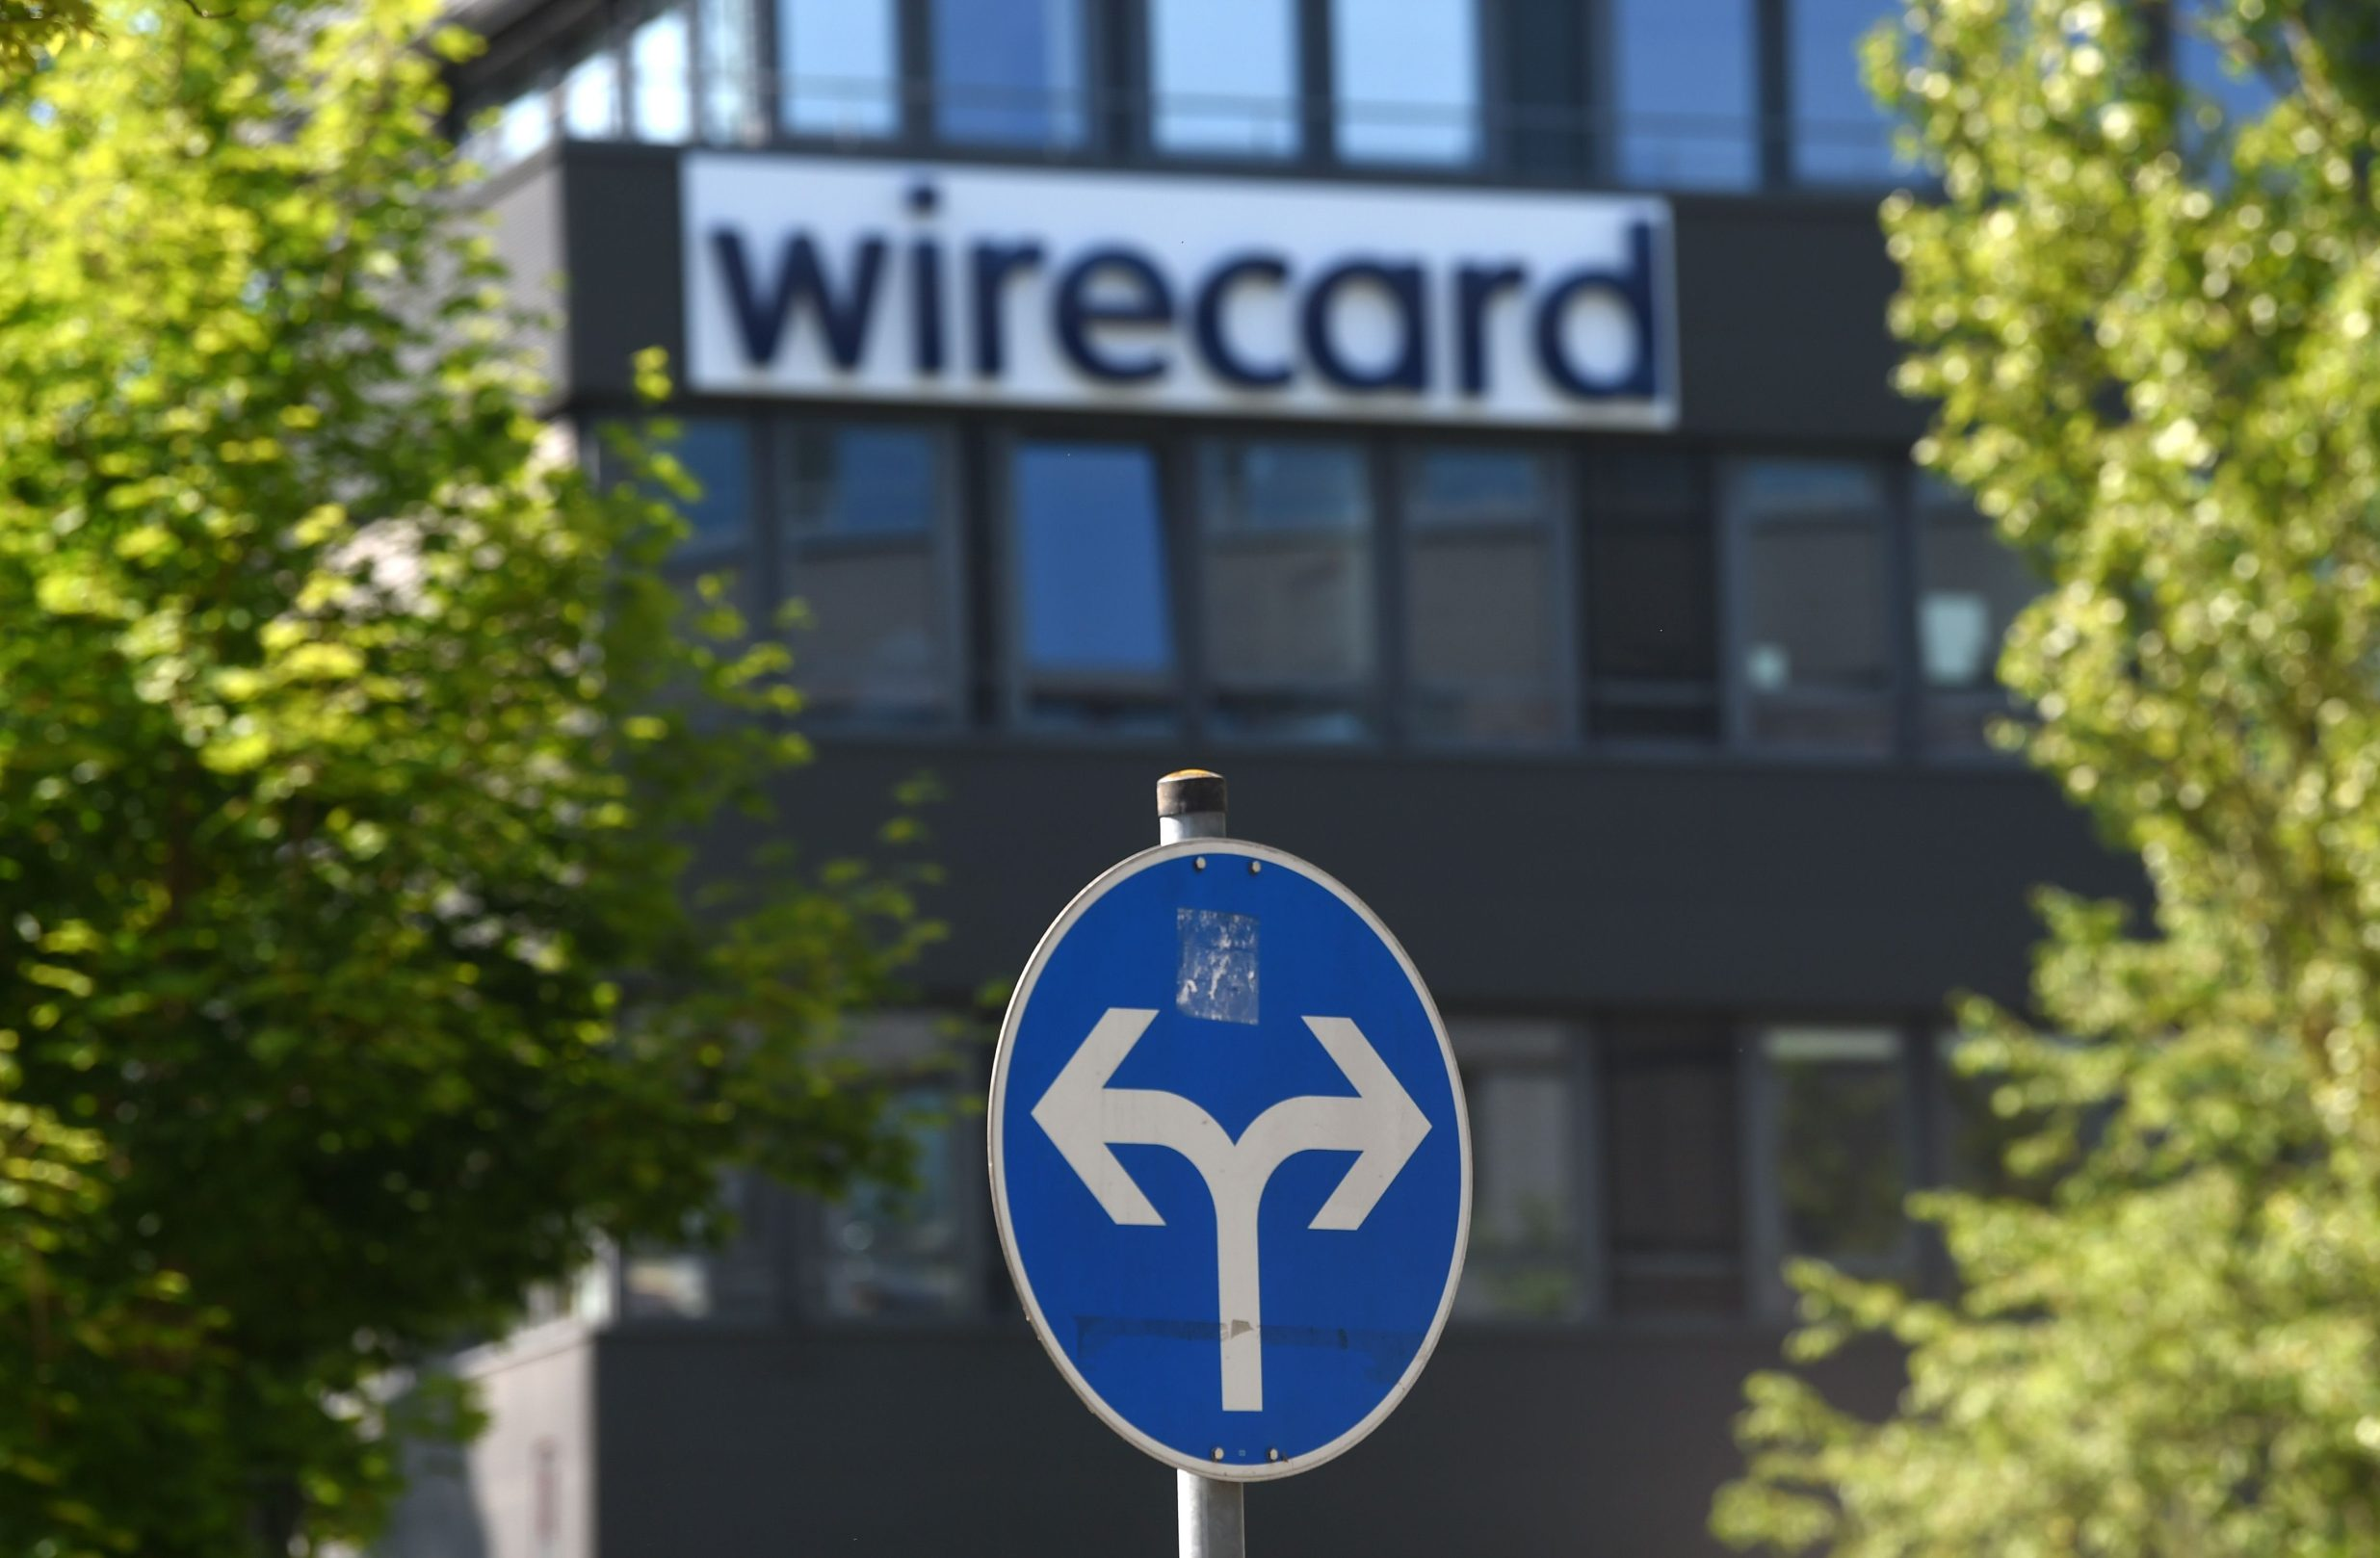 A traffic sign stands in front of the headquarters of German payments provider Wirecard in Aschheim near Munich, southern Germany, on June 24, 2020. - In what could be one of the biggest financial frauds of recent years, German payments provider Wirecard admitted 1.9 billion euros that auditors say are missing from its accounts likely